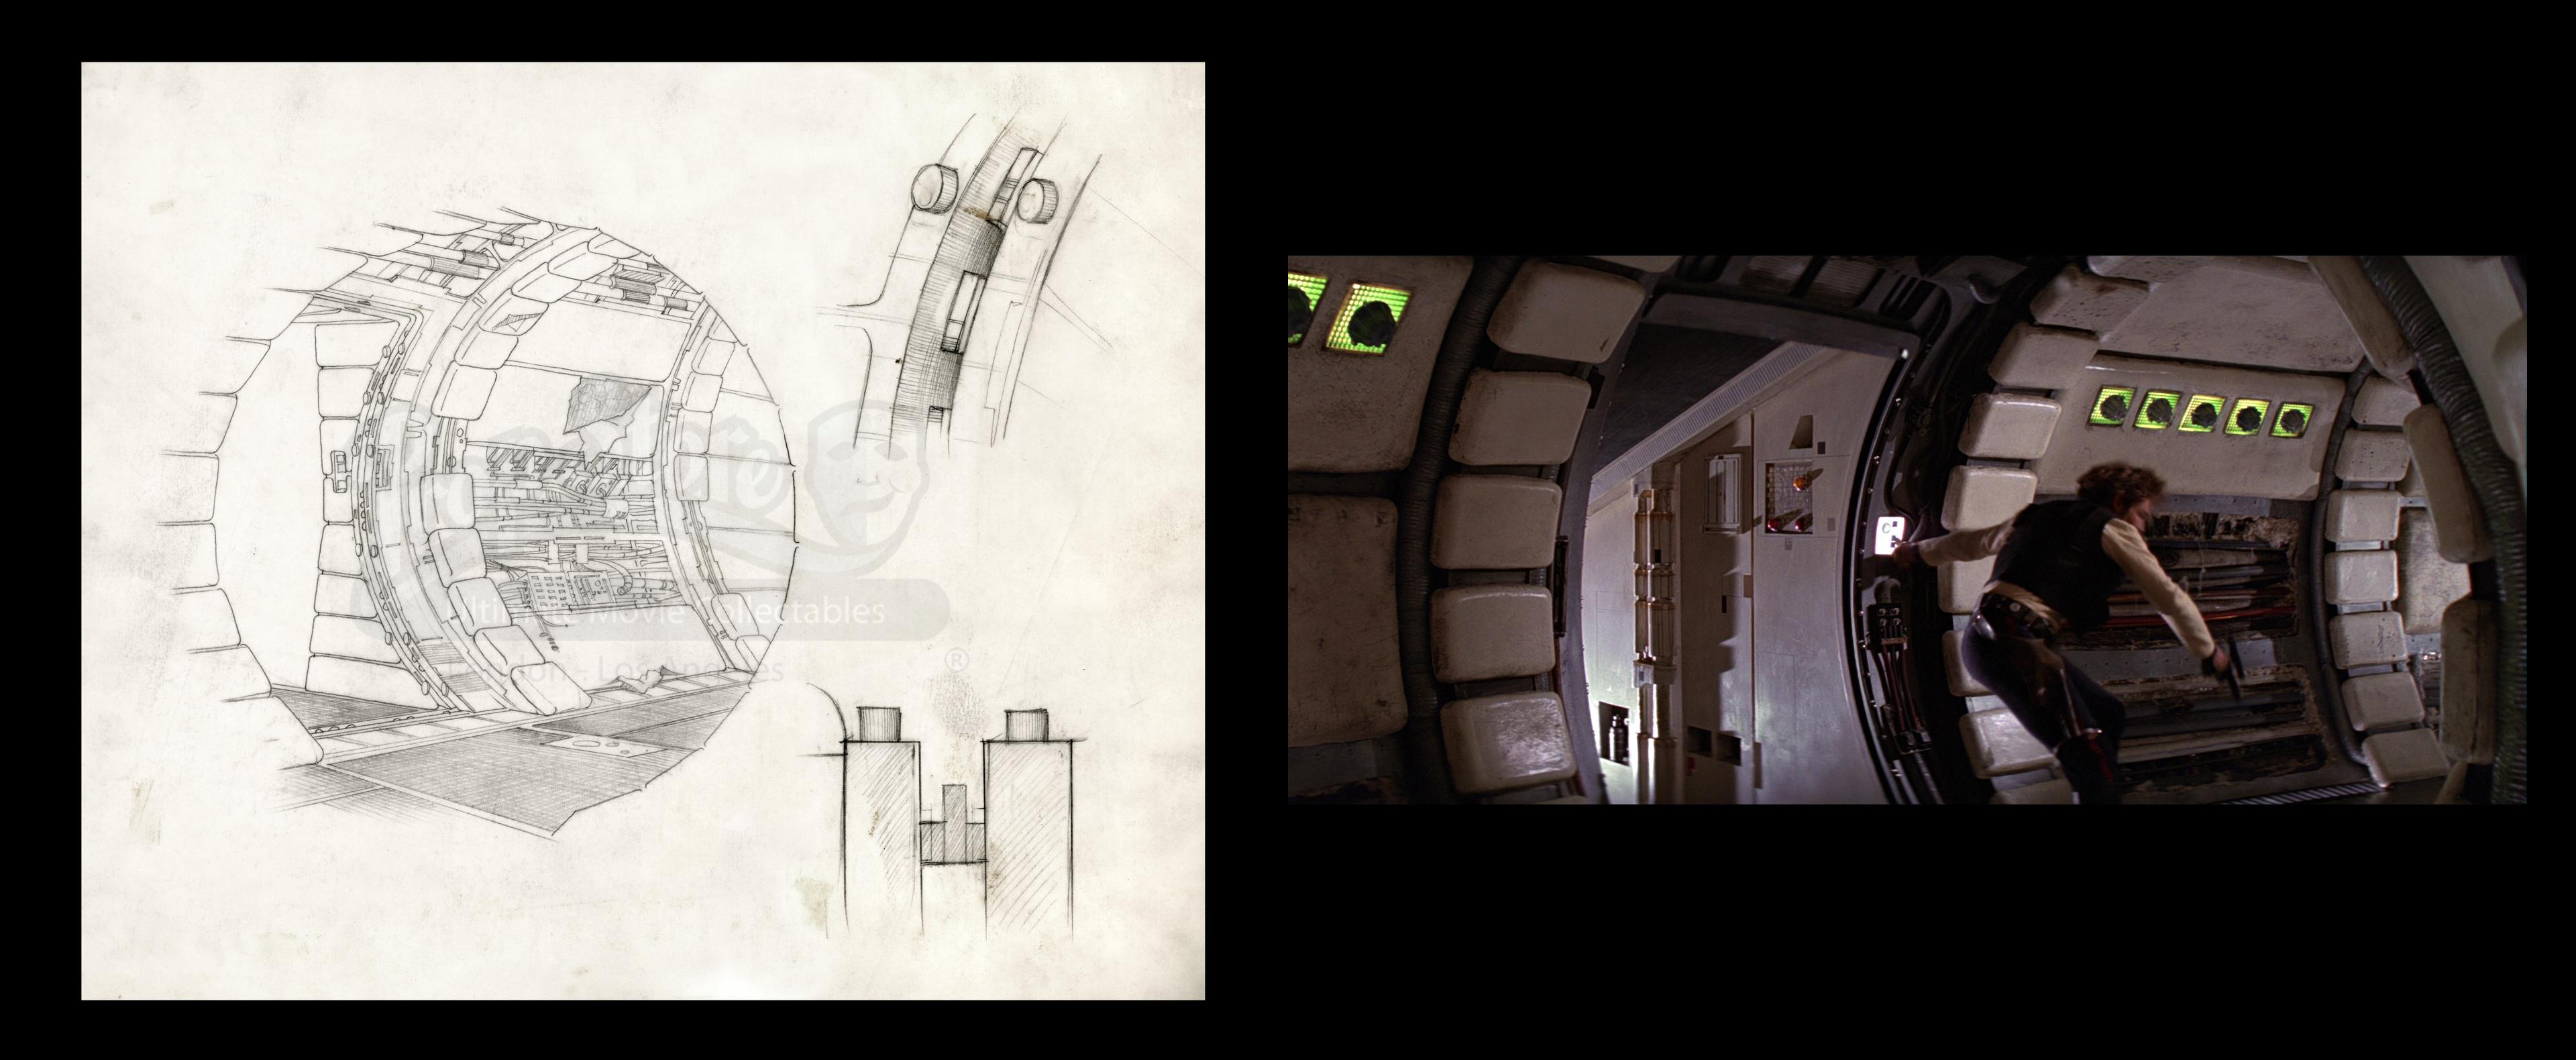 Hand-drawn Detail of the Millennium Falcon Corridor with Door Frame Mechanism. Photo: Prop Store